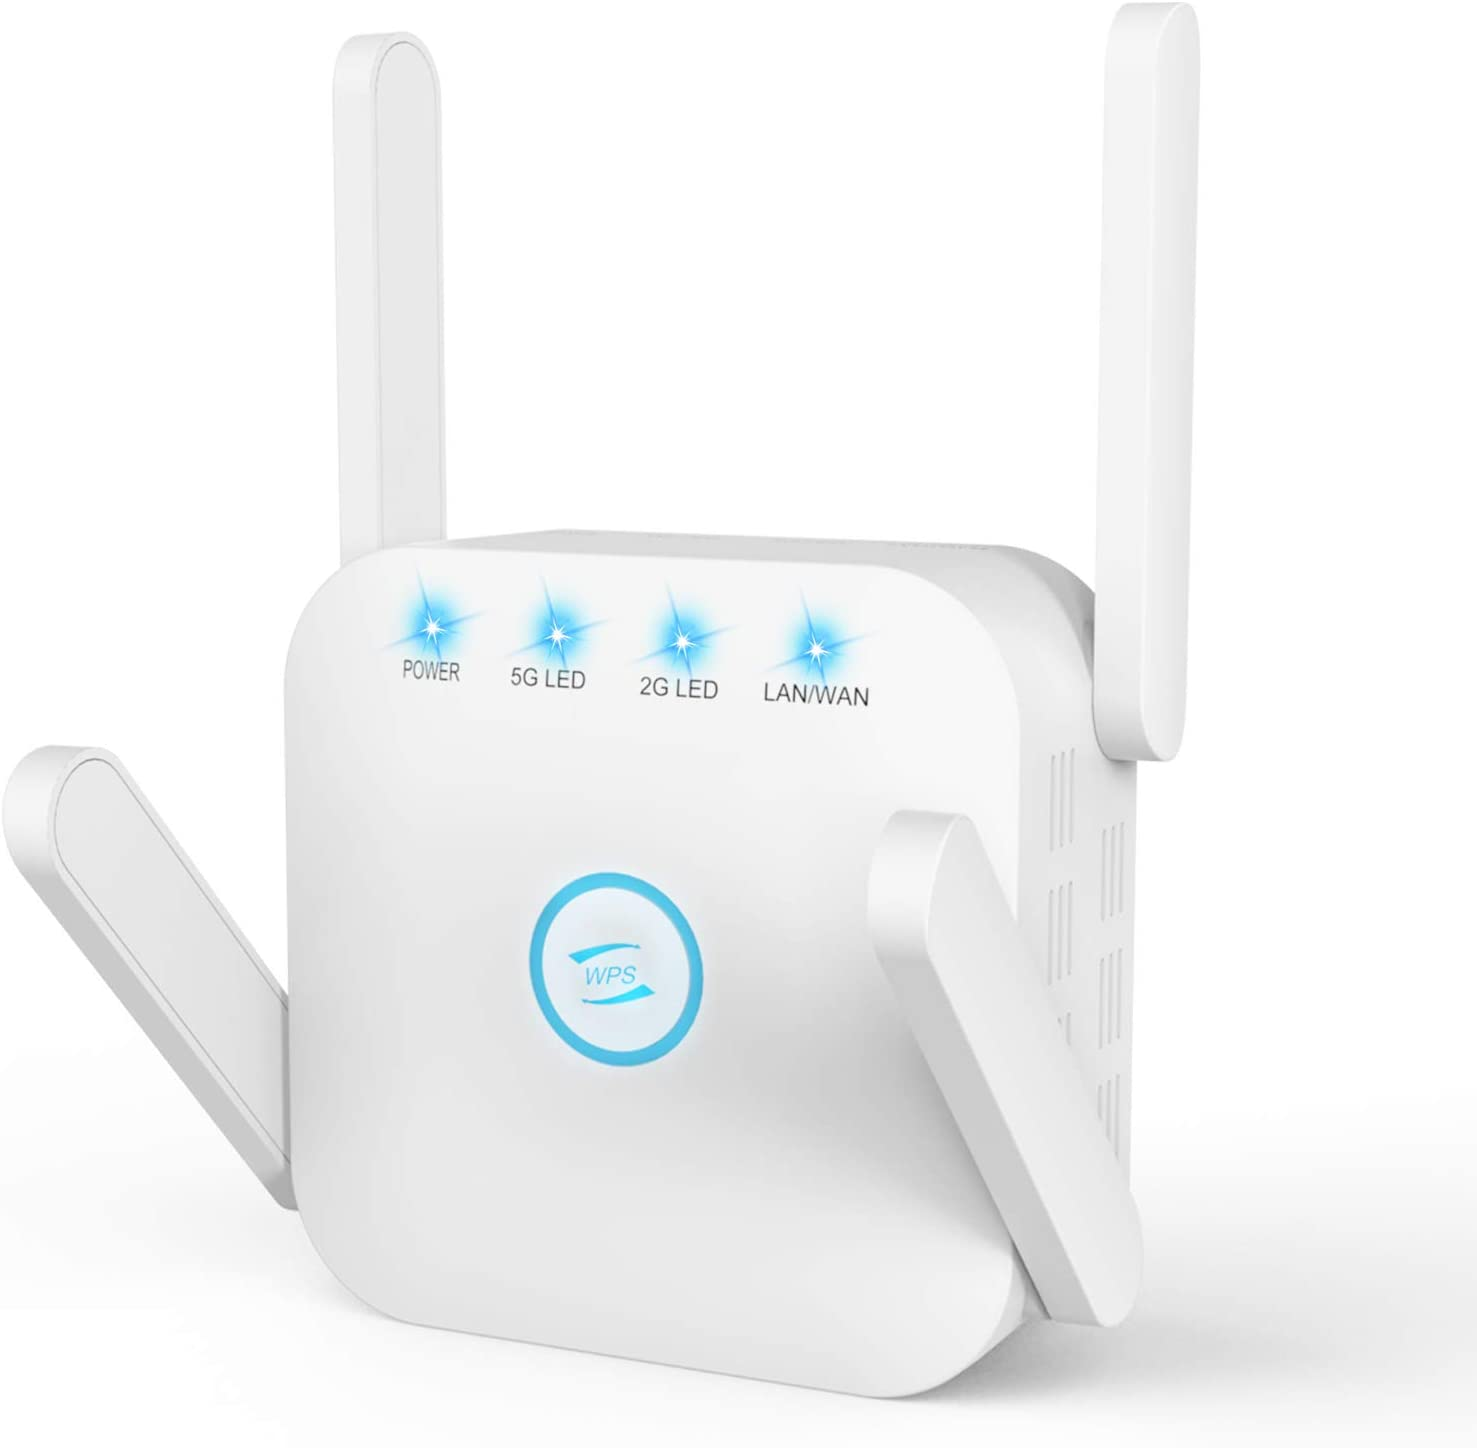 WiFi Range Extender, 1200Mbps WiFi Extender Signal Booster for Home, Dual Band 2.4G 5G WiFi Repeater, 4 Antennas 360° Full Coverage Ethernet WPS AP/Repeater Mode